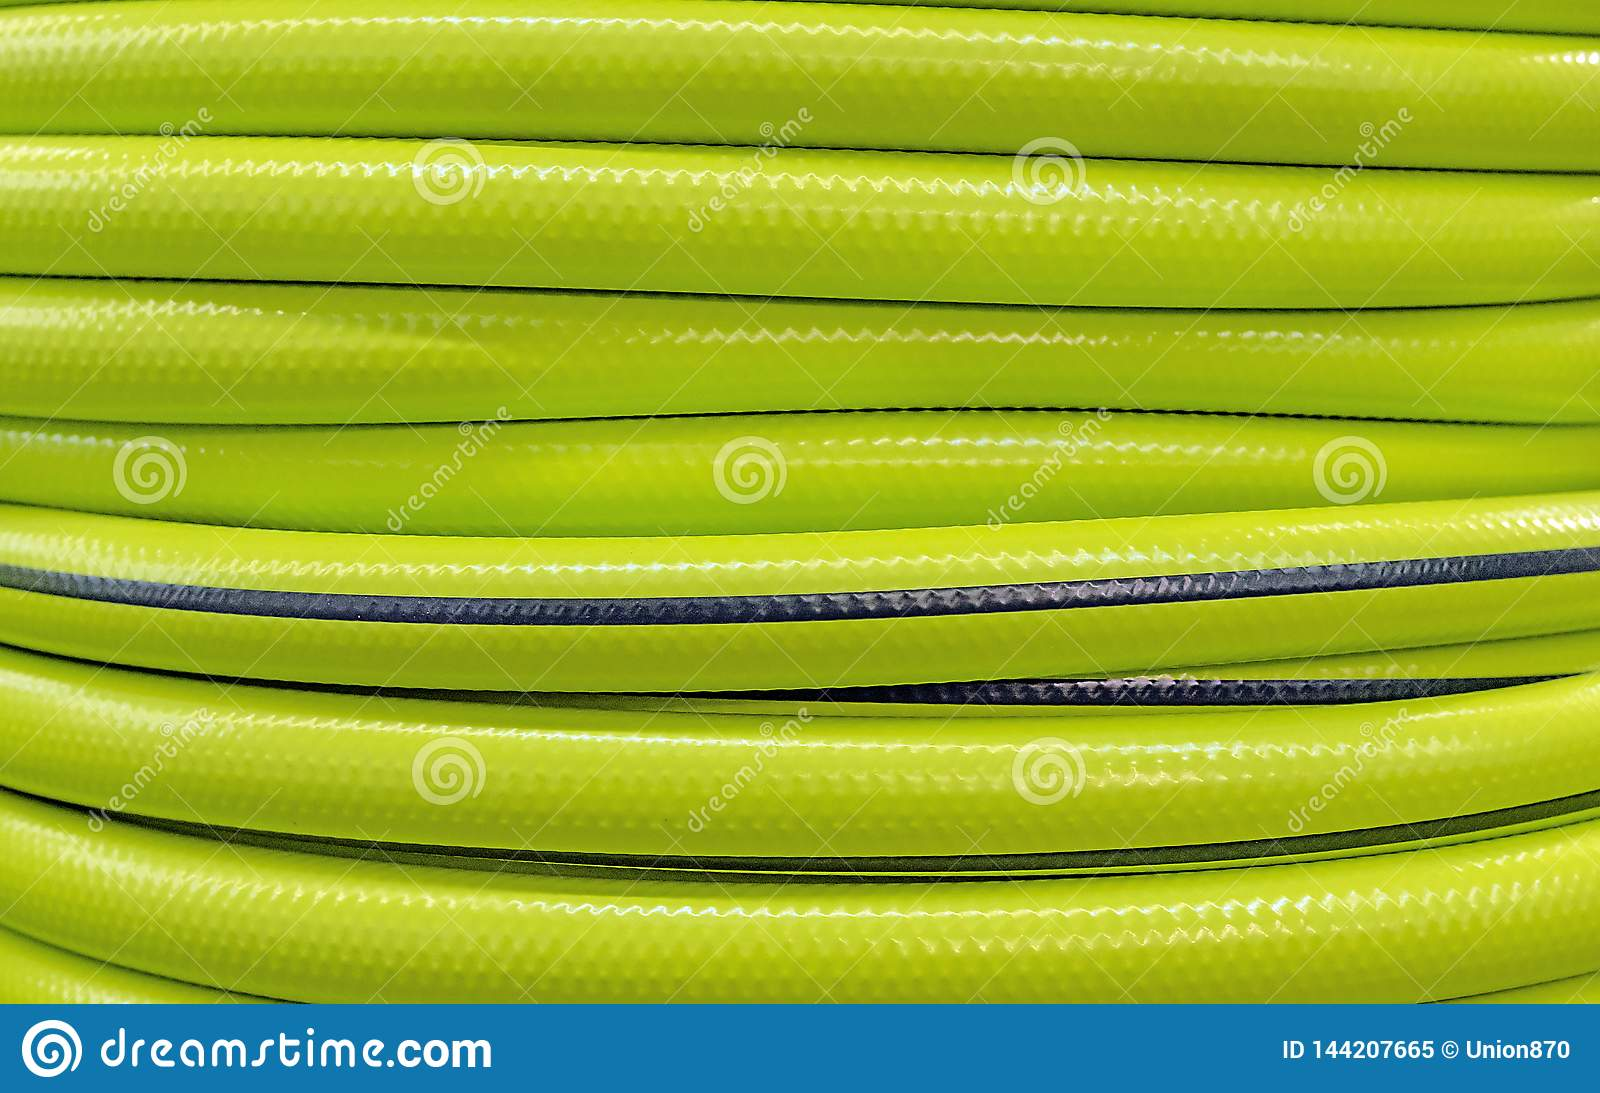 Background and texture of a garden hose. Bright garden hose